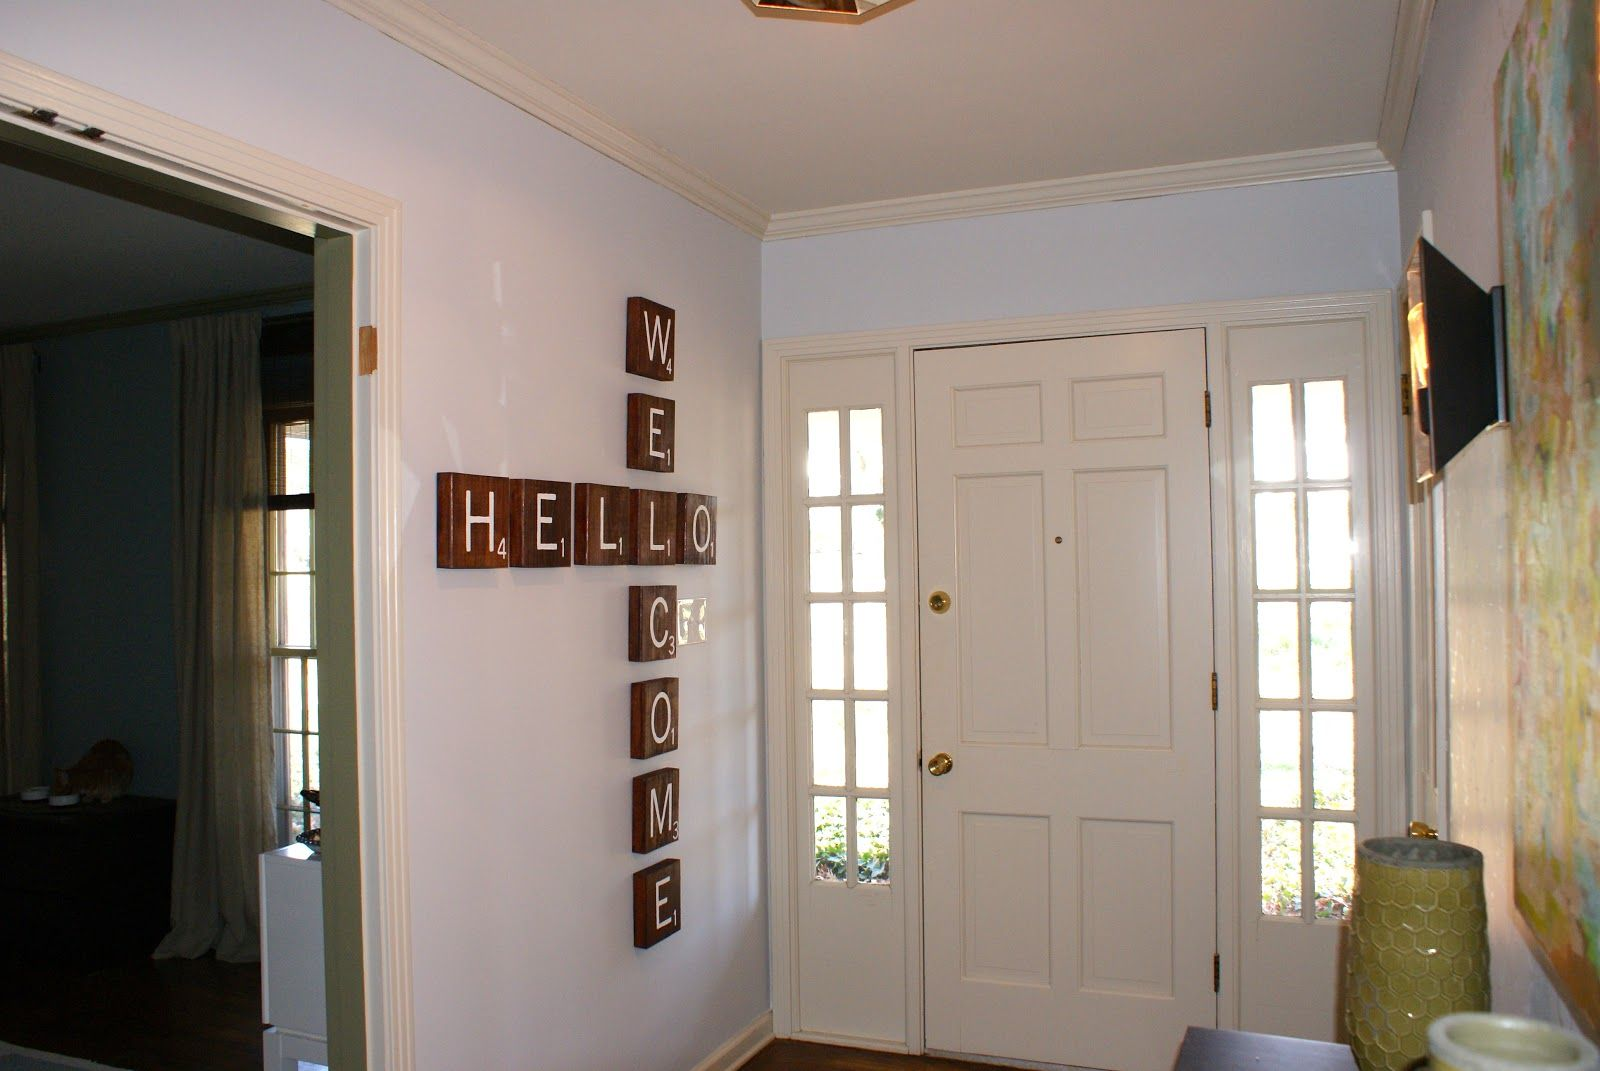 Wall Painting Designs For Hall Some Like A Project Scrabble Tile Wall Art Wall Art